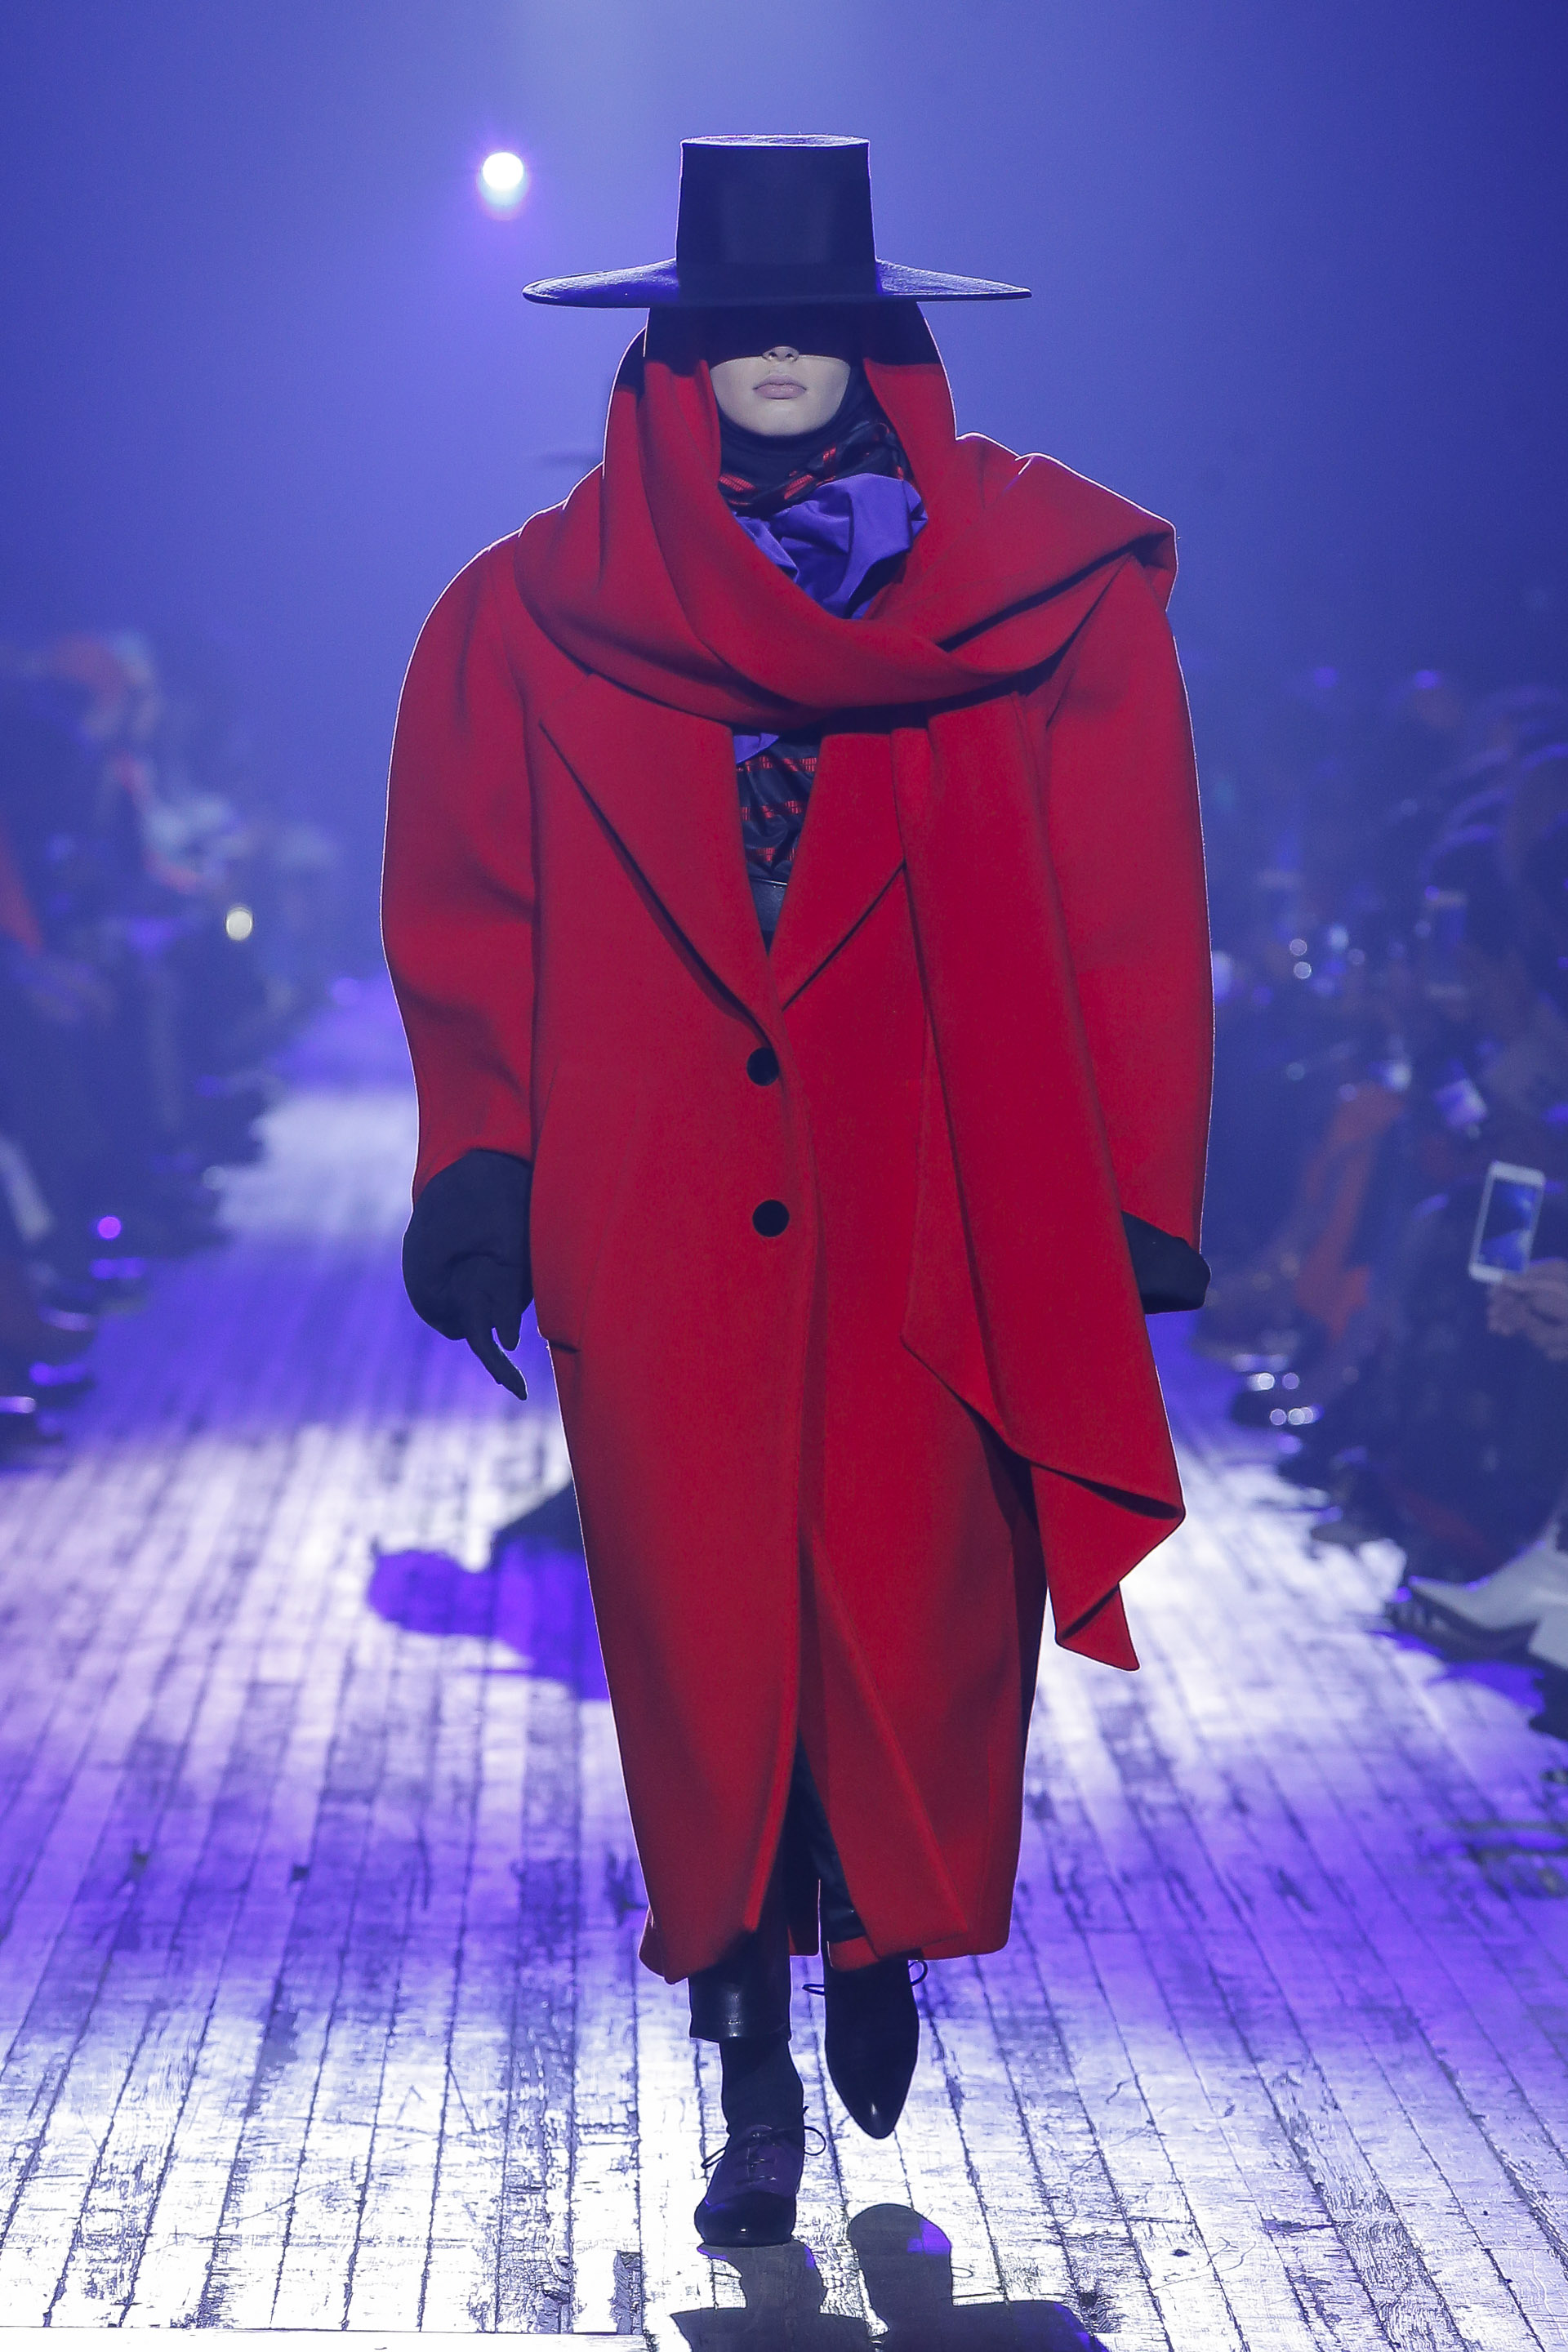 INCREDIBLE VOLUMES AT MARC JACOBS A/W 2018